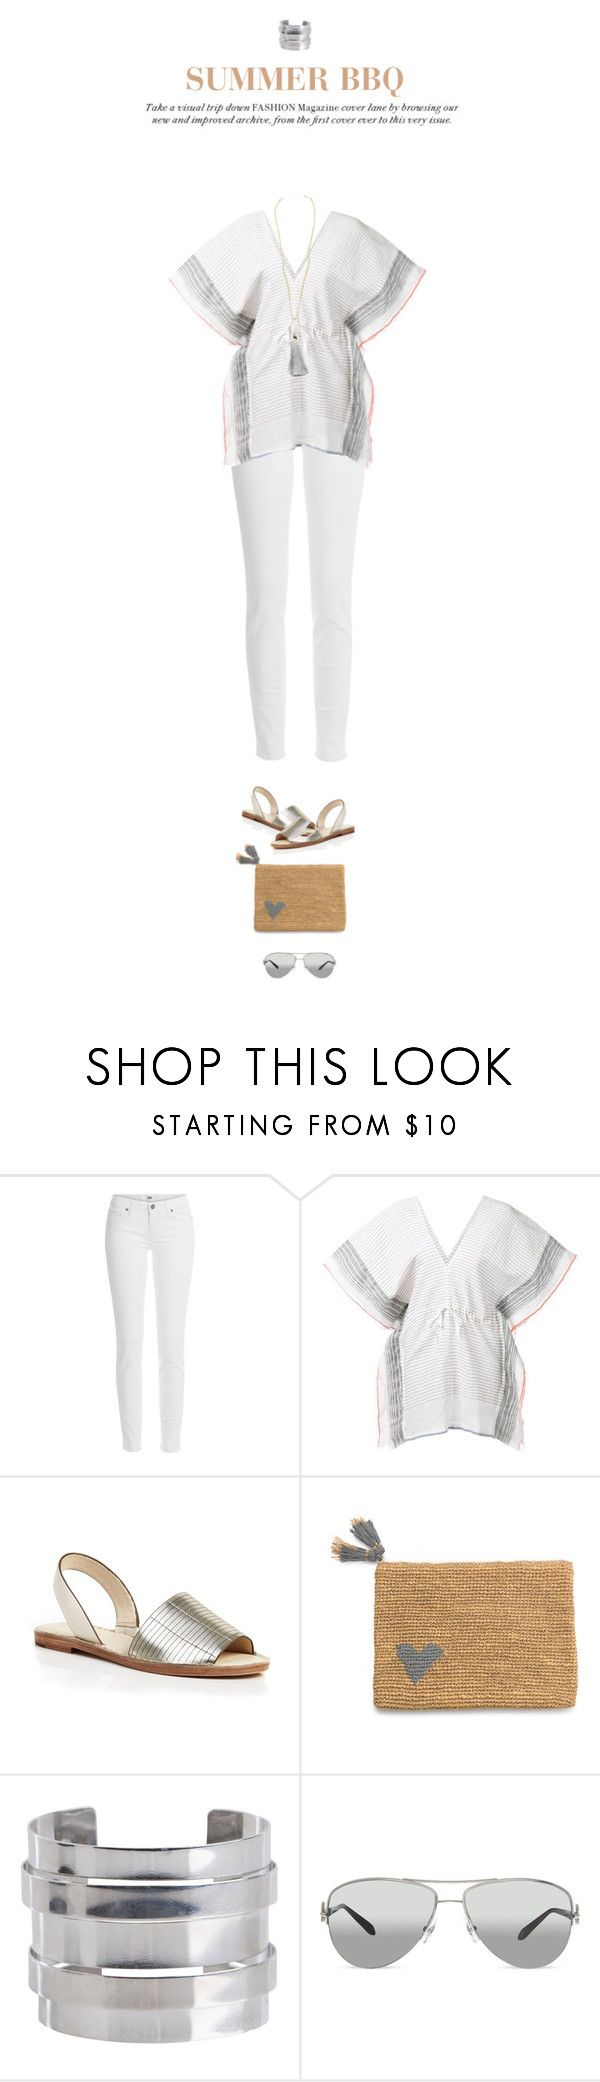 """keep cool"" by maura717 ❤ liked on Polyvore featuring Paige Denim, Lemlem, AERIN, Pieces, Tiffany & Co., tunic, paigejeans and Aerin"